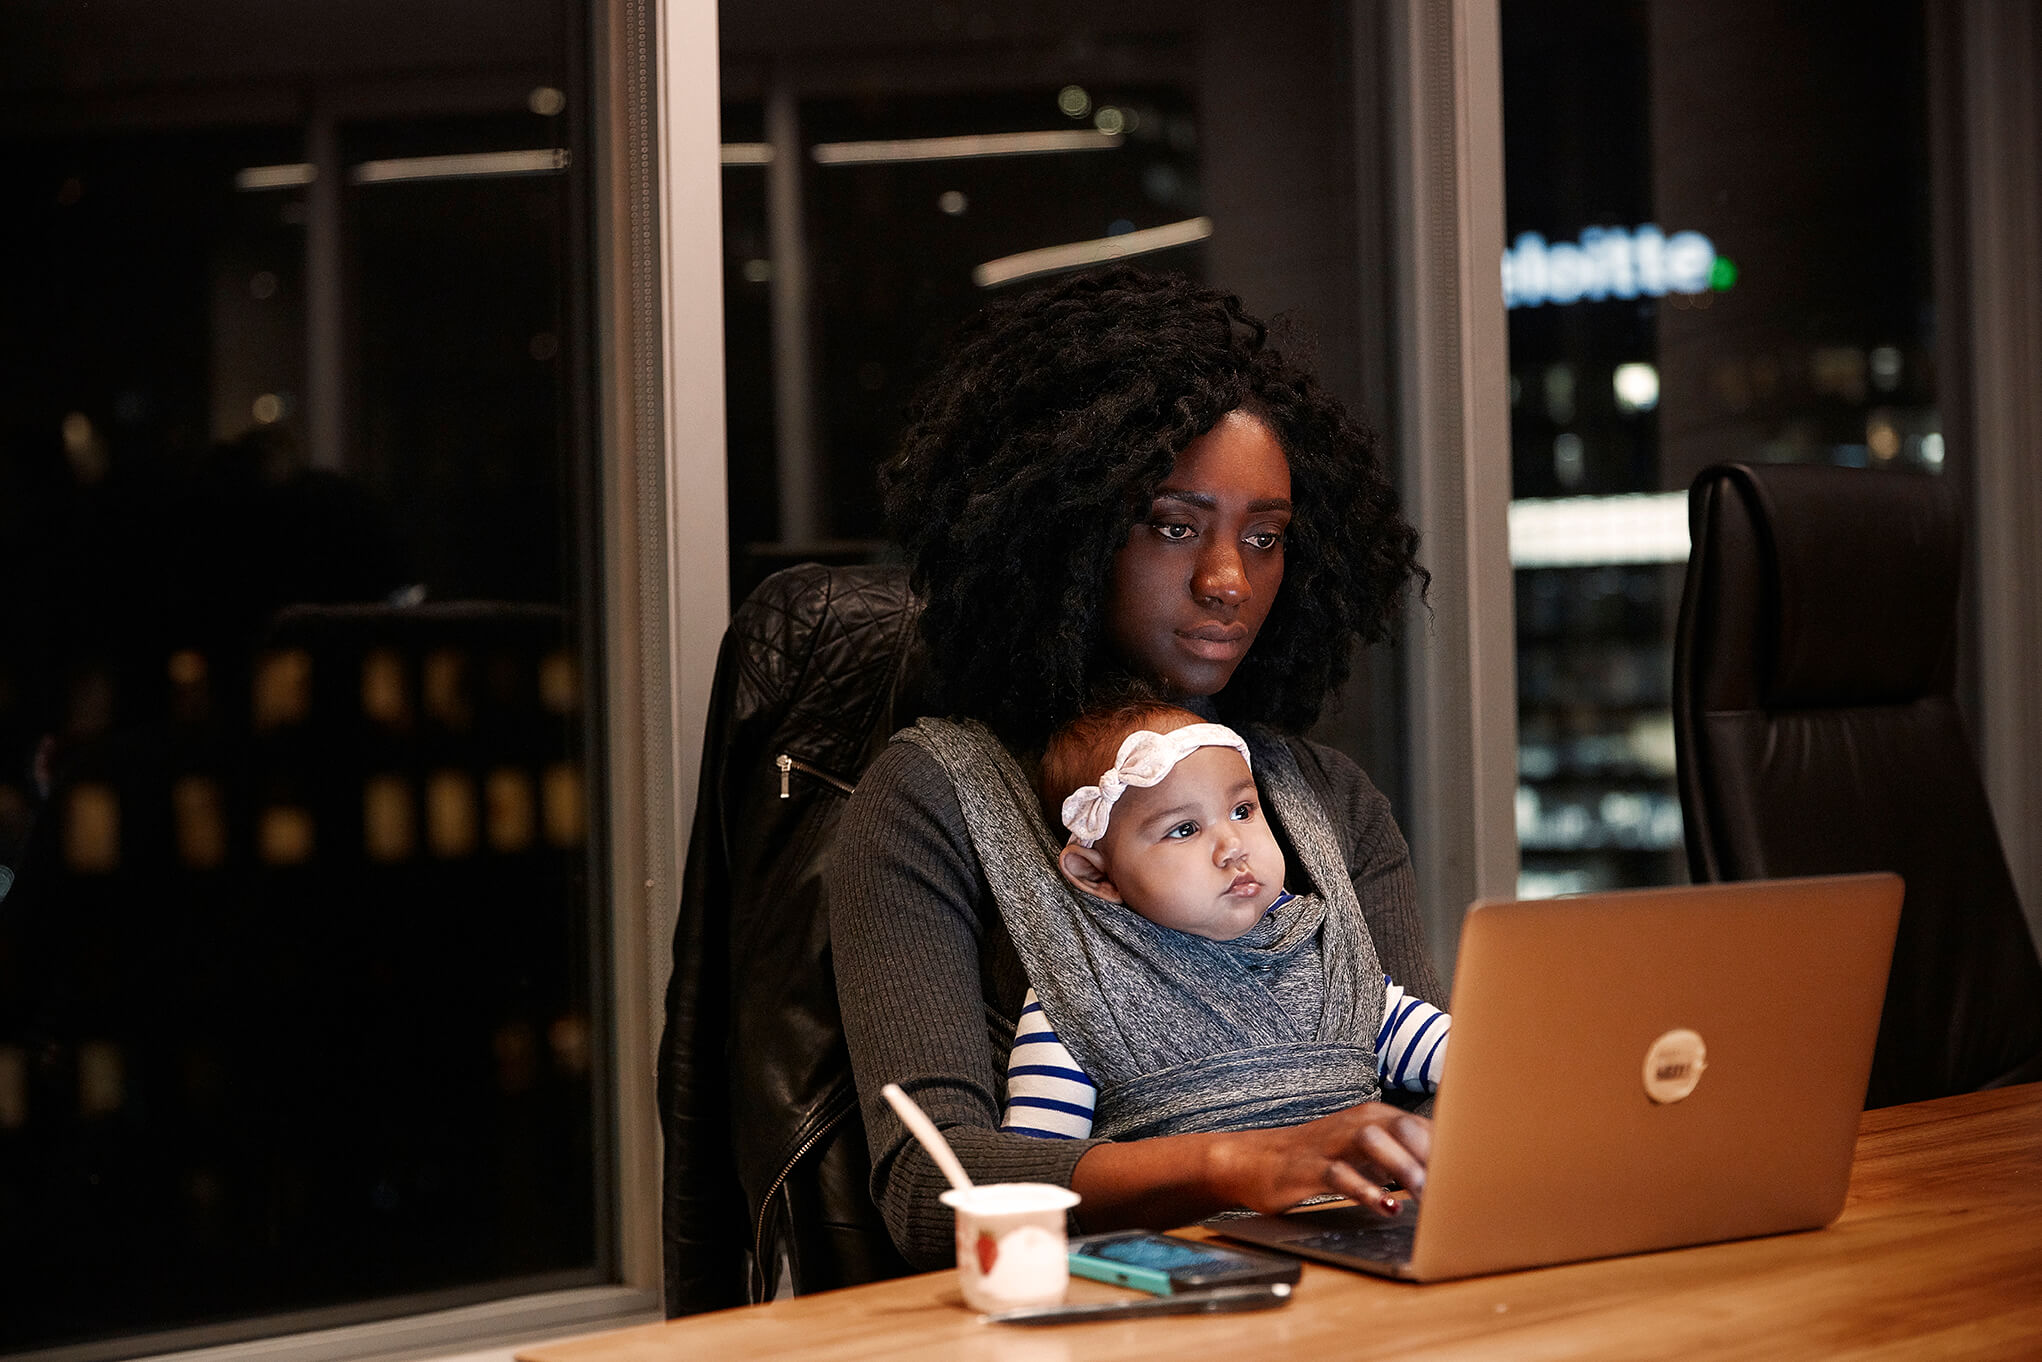 Unified Content, Unified Content Toronto, Max Rosenstein, Boppy, Boppy Babies, Boppy Canada, Boppy USA, Boppy advertising, advertising toronto, toronto, production, production toronto, woman, babies, mothers, working mothers, working mothers stock images,